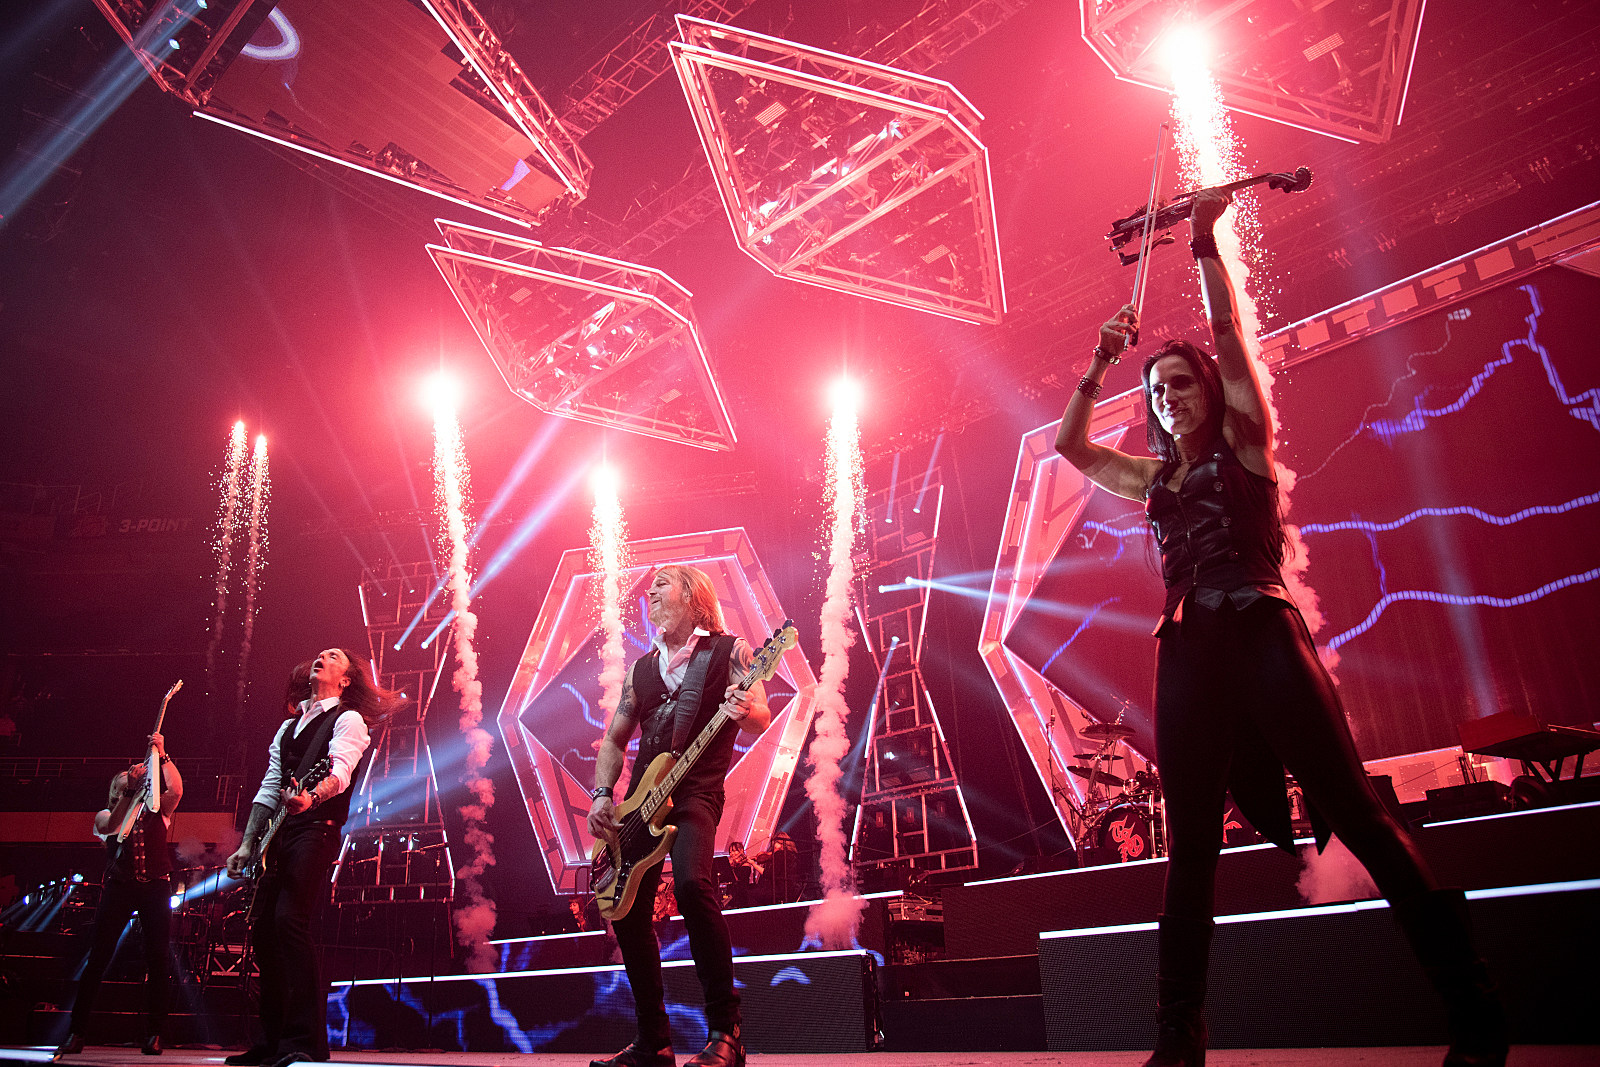 Trans-Siberian Orchestra 'Chomping at the Bit' Ahead of 2021 Tour